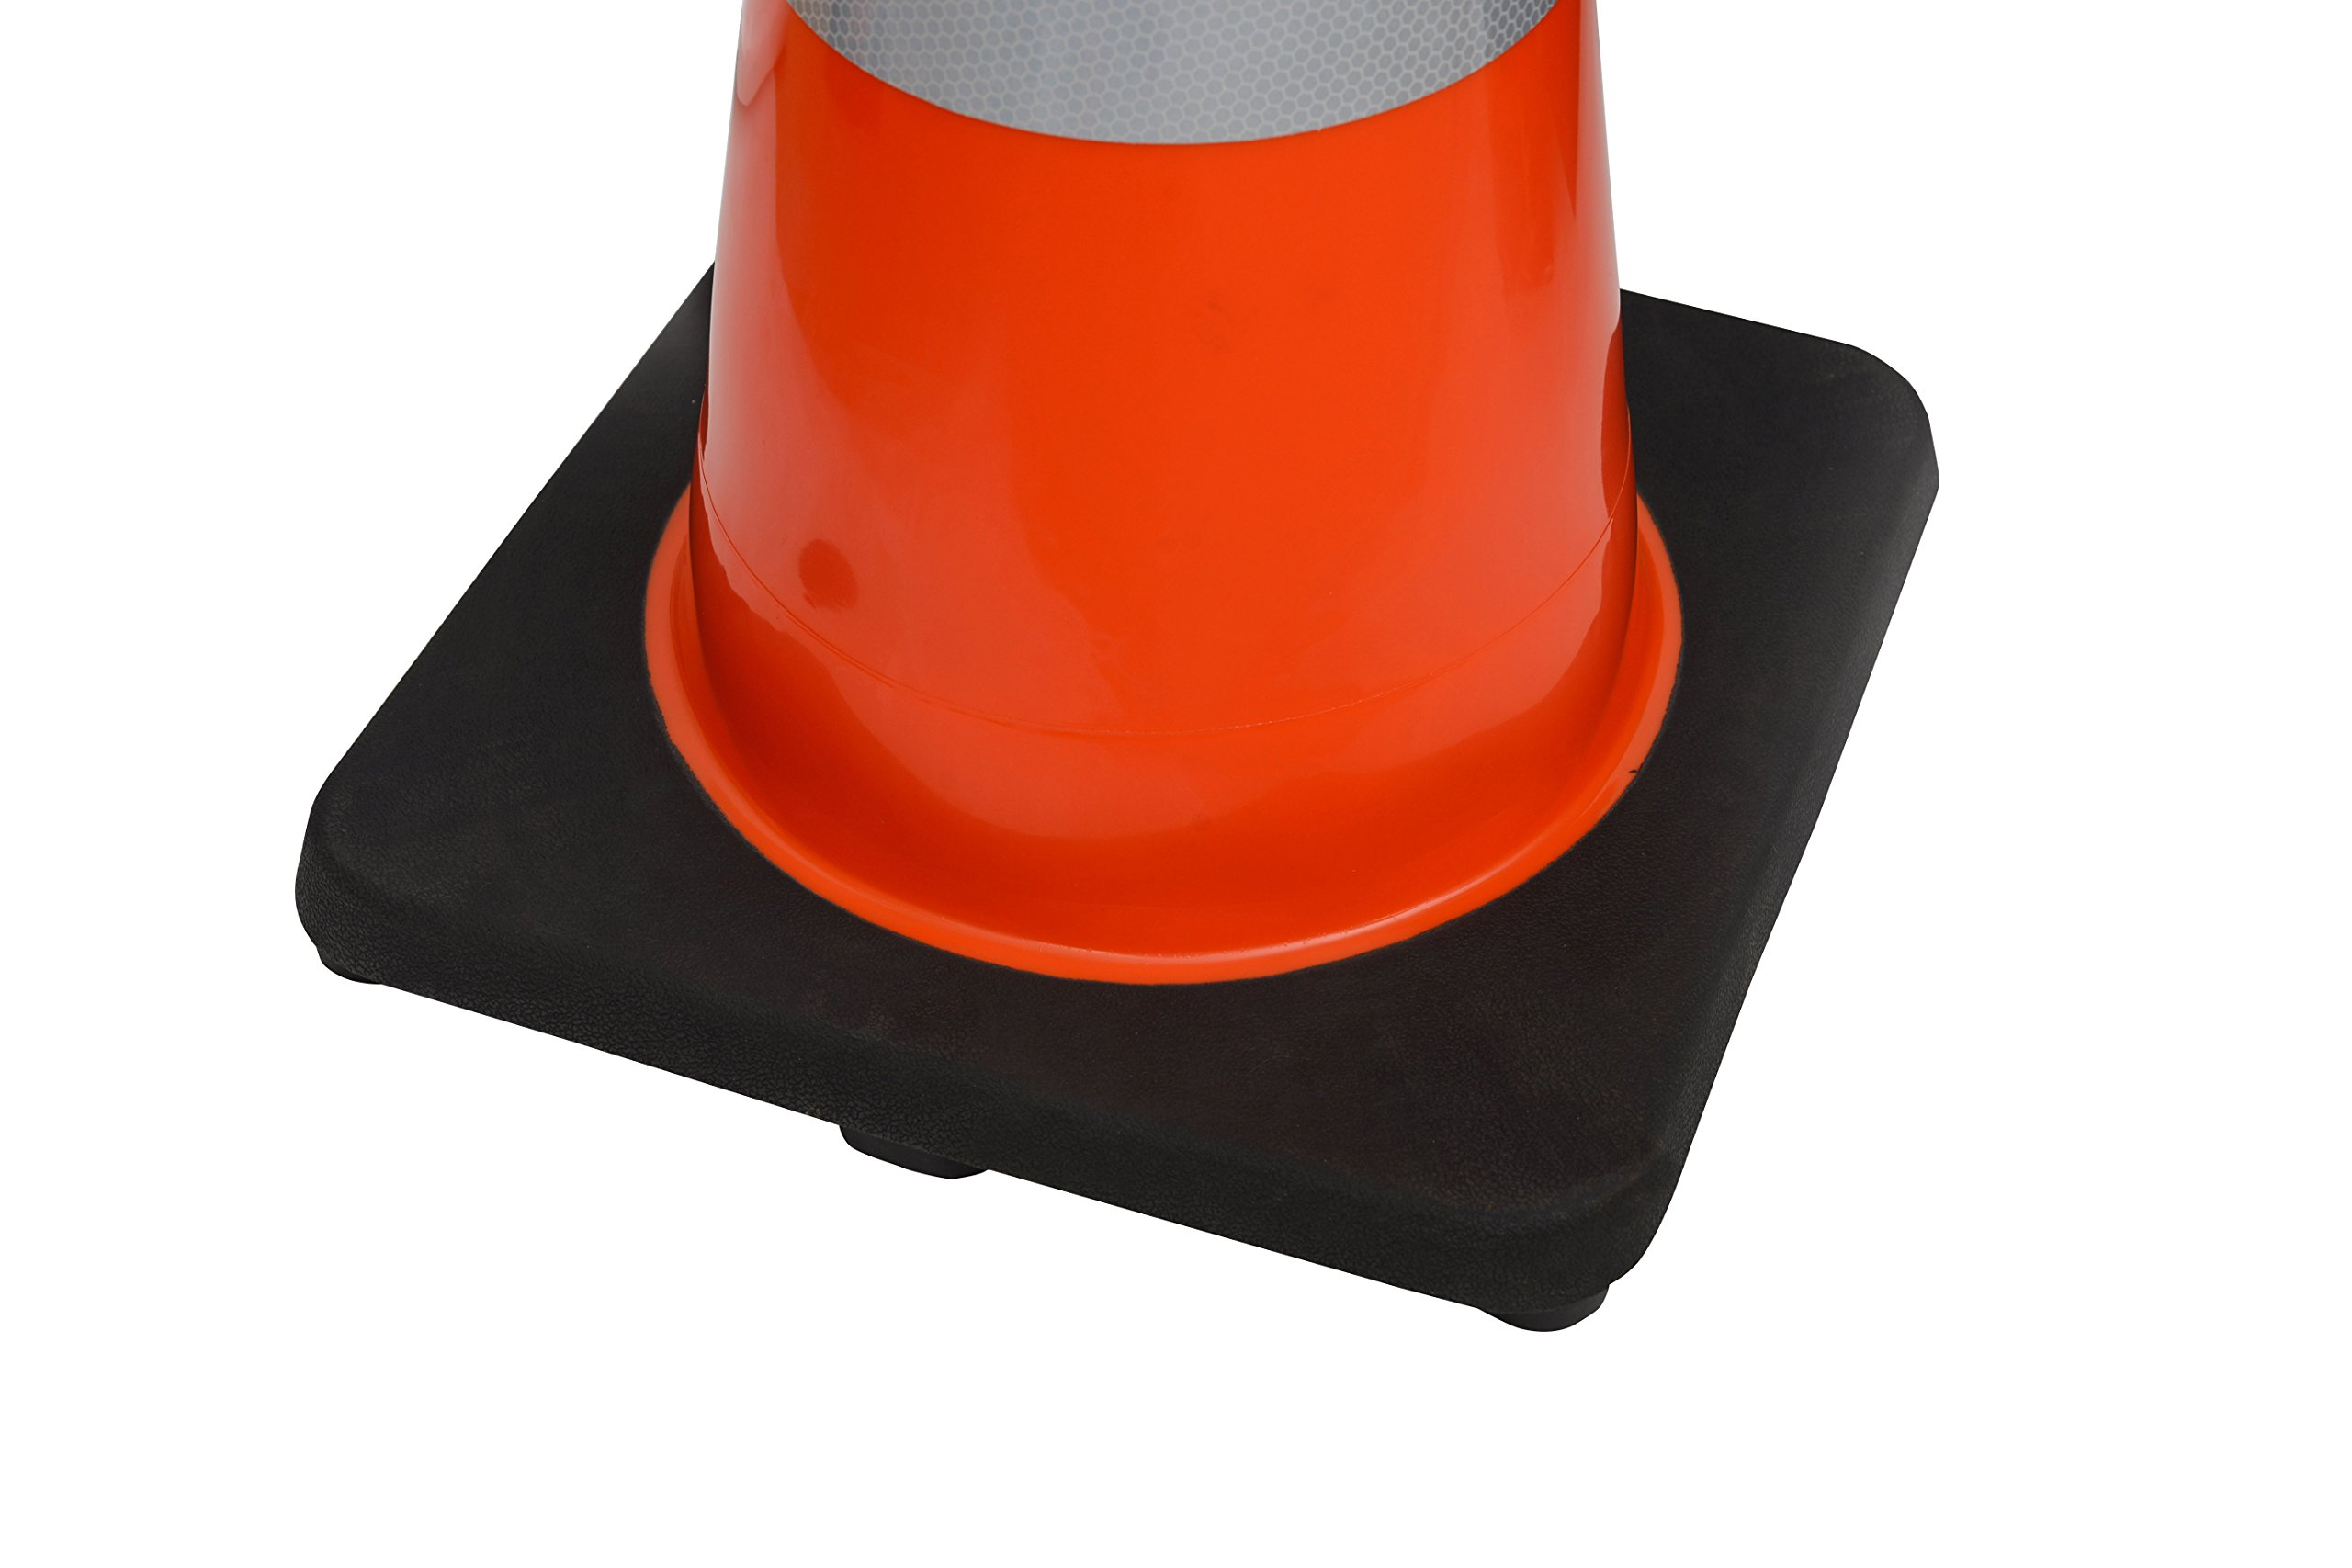 (6 Cones) CJ Safety 36'' Orange PVC Traffic Safety Cones with Black Base & 6'' + 4'' Reflective Collars (Set of 6) by CJ Safety